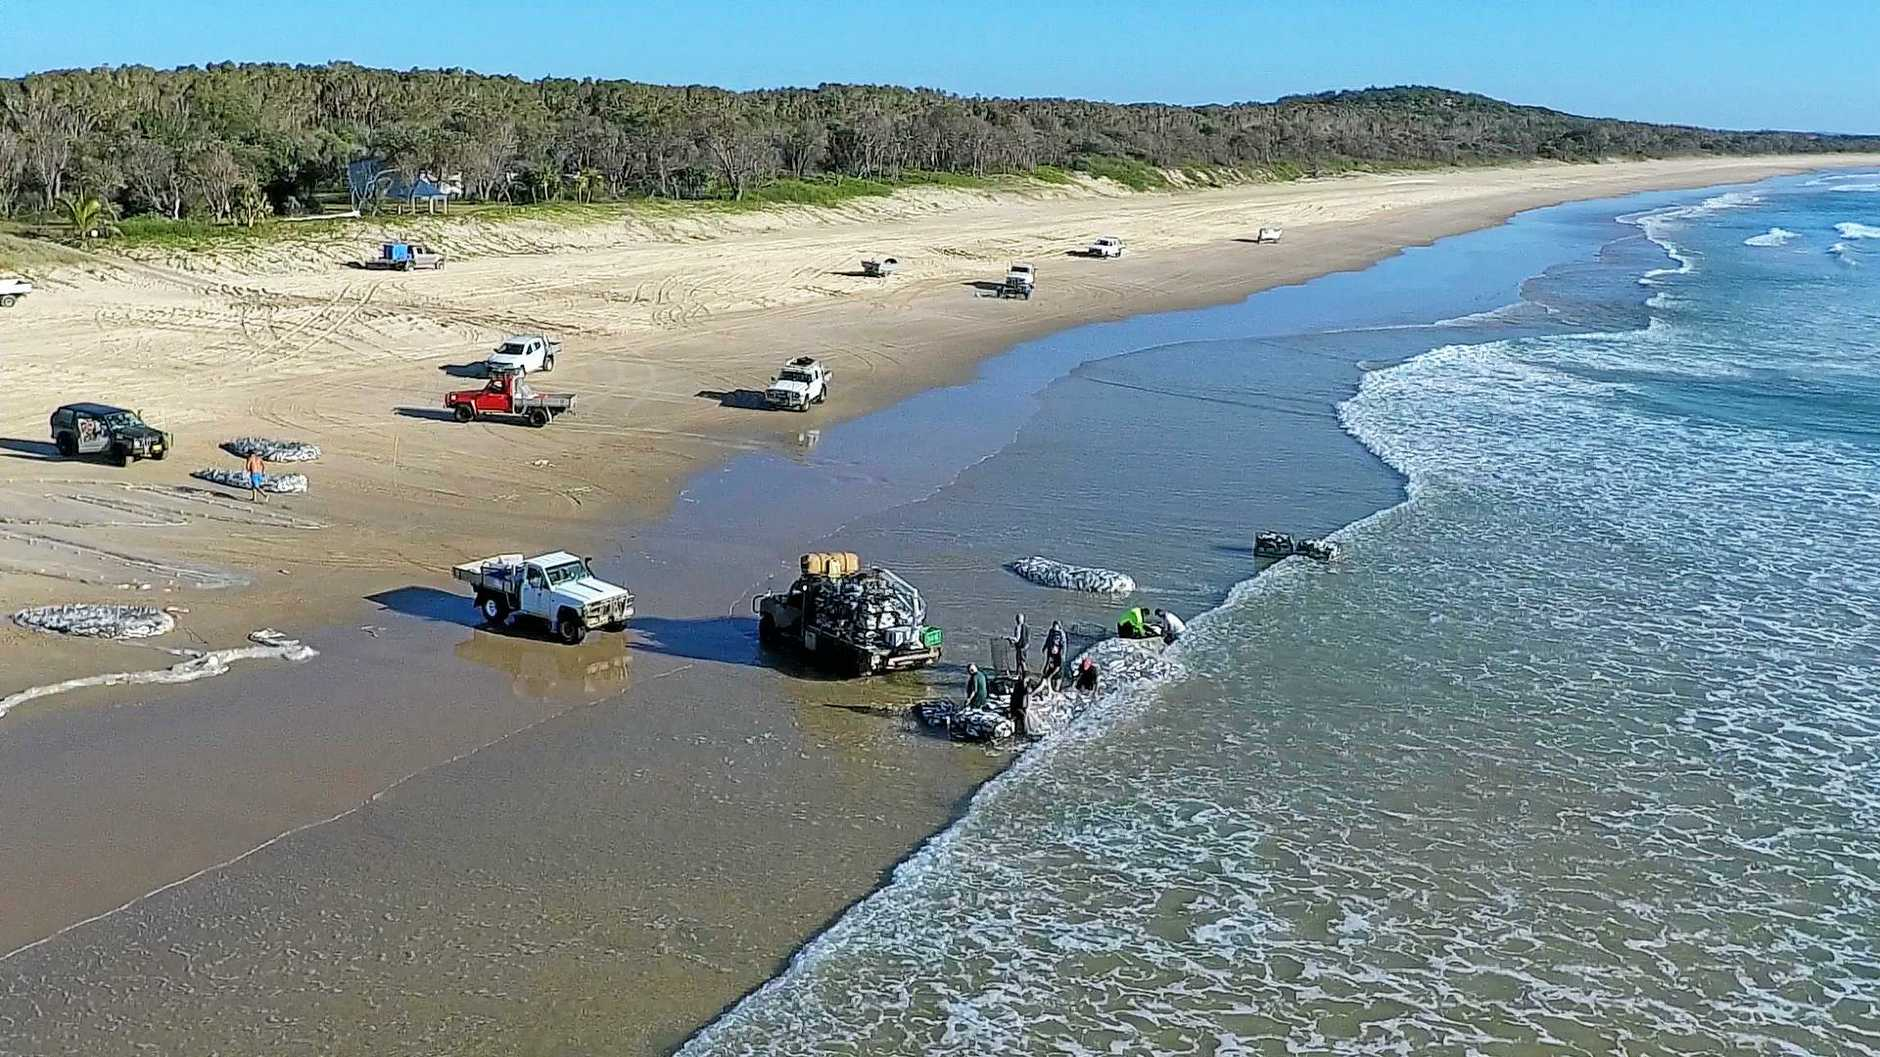 Mass catch of mullet 1Km north of Noosa River mouth; photo taken from a drone